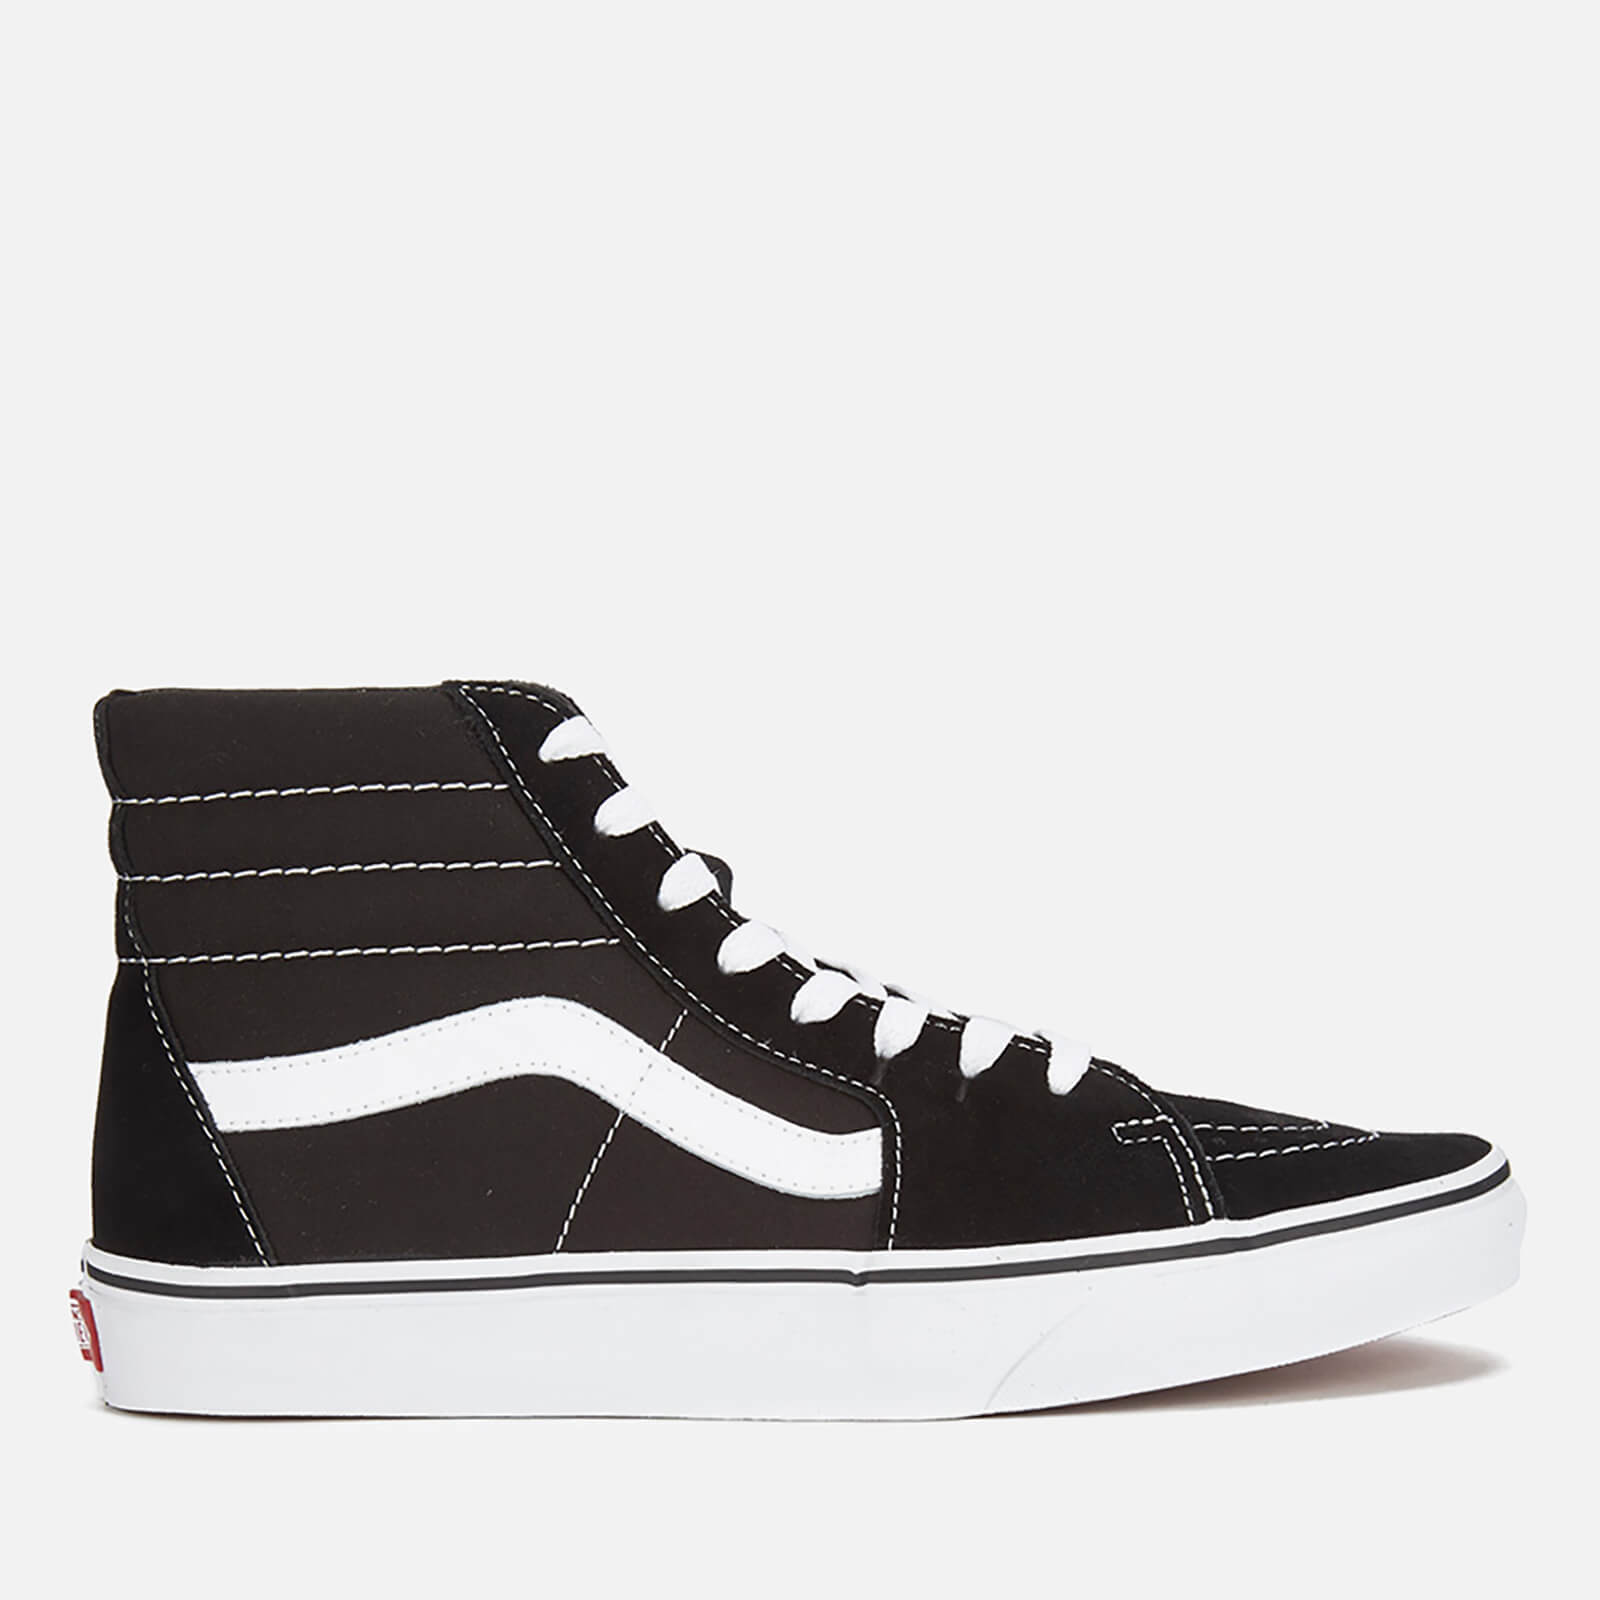 chaussures homme vans sk8 hi noir blanc mens footwear. Black Bedroom Furniture Sets. Home Design Ideas